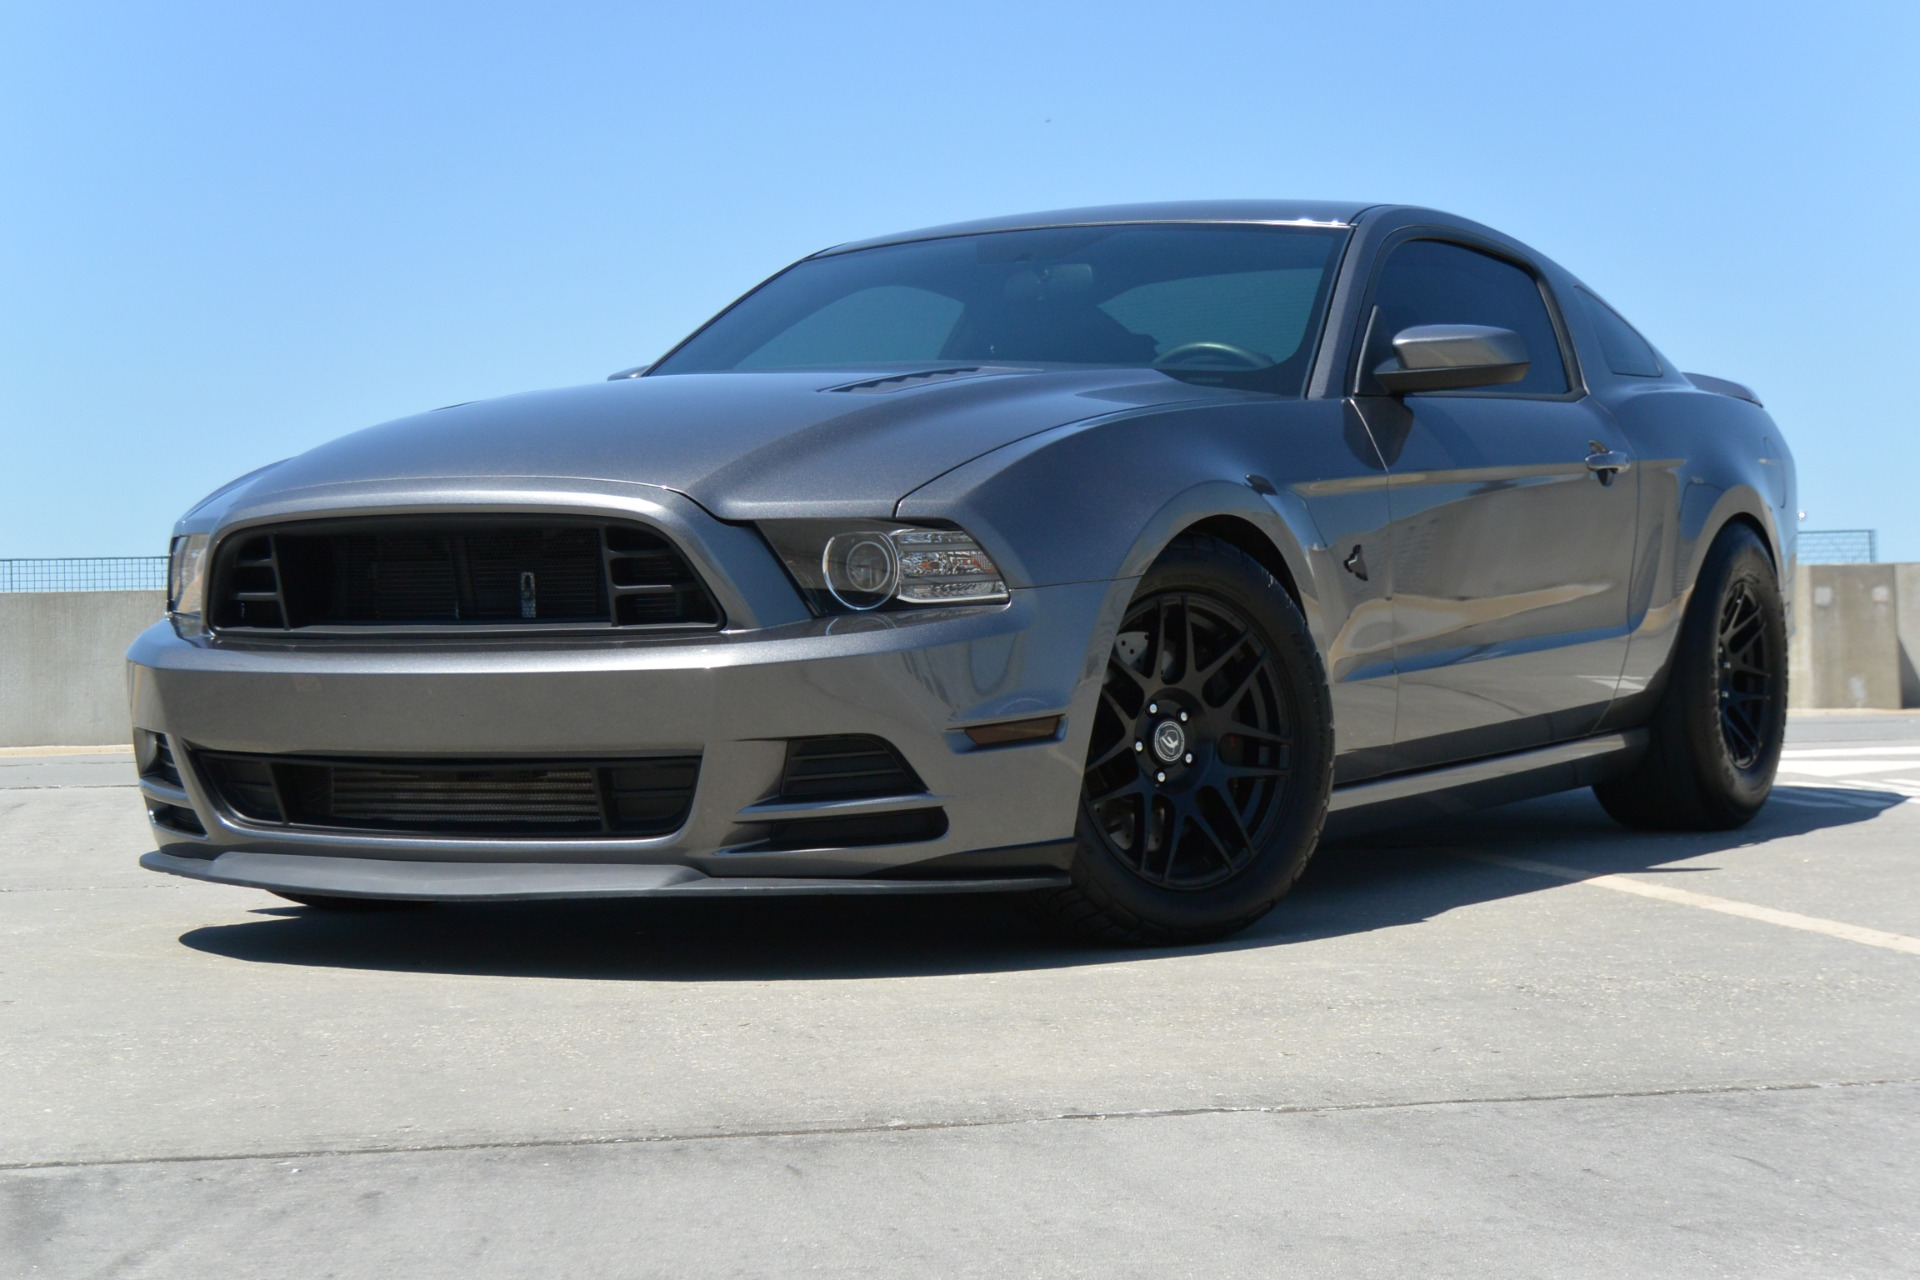 Used 2014 ford mustang gt over 700hp extensive